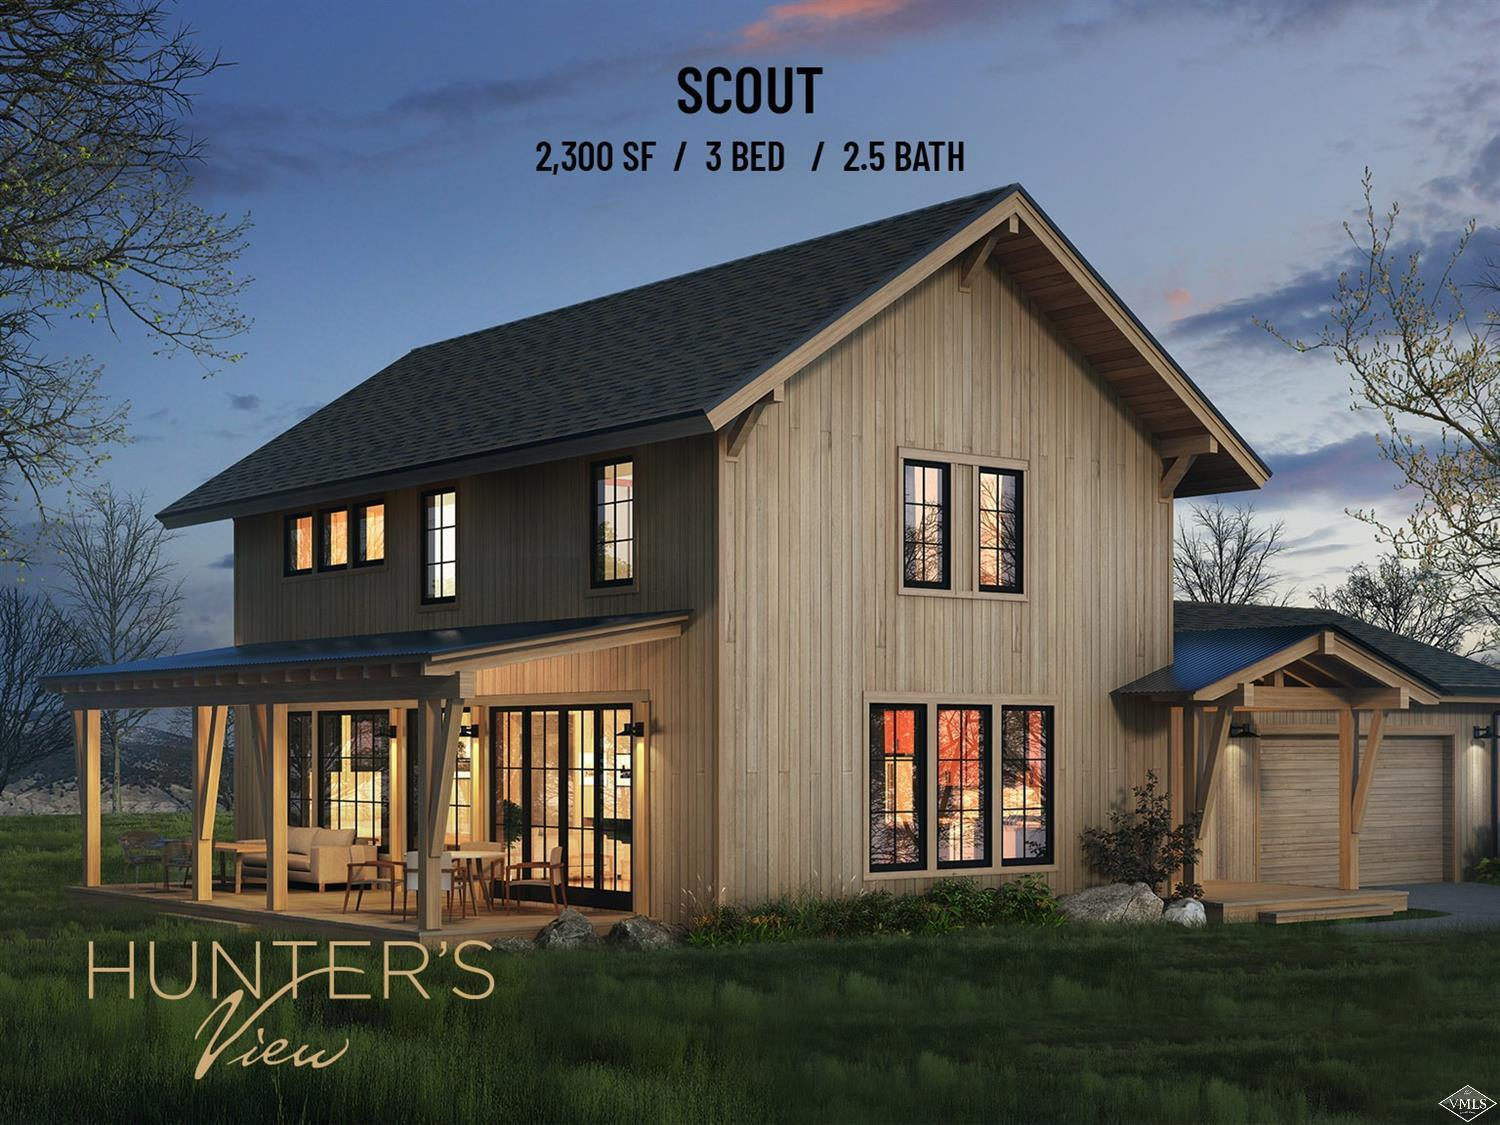 Starting Spring of 2020 - Scout Model -Hunter's View Residences - Nestled on 81 acres, surrounded by pristine wilderness, Hunter's View is Frost Creek's newest real estate offering. Phase 1 (15 homes out of 44) are thoughtfully designed new construction homes, which is a perfect combination of personalization and convenience. With 3 unique layouts and numerous additions to choose from, no 2 residences will be exactly the same.